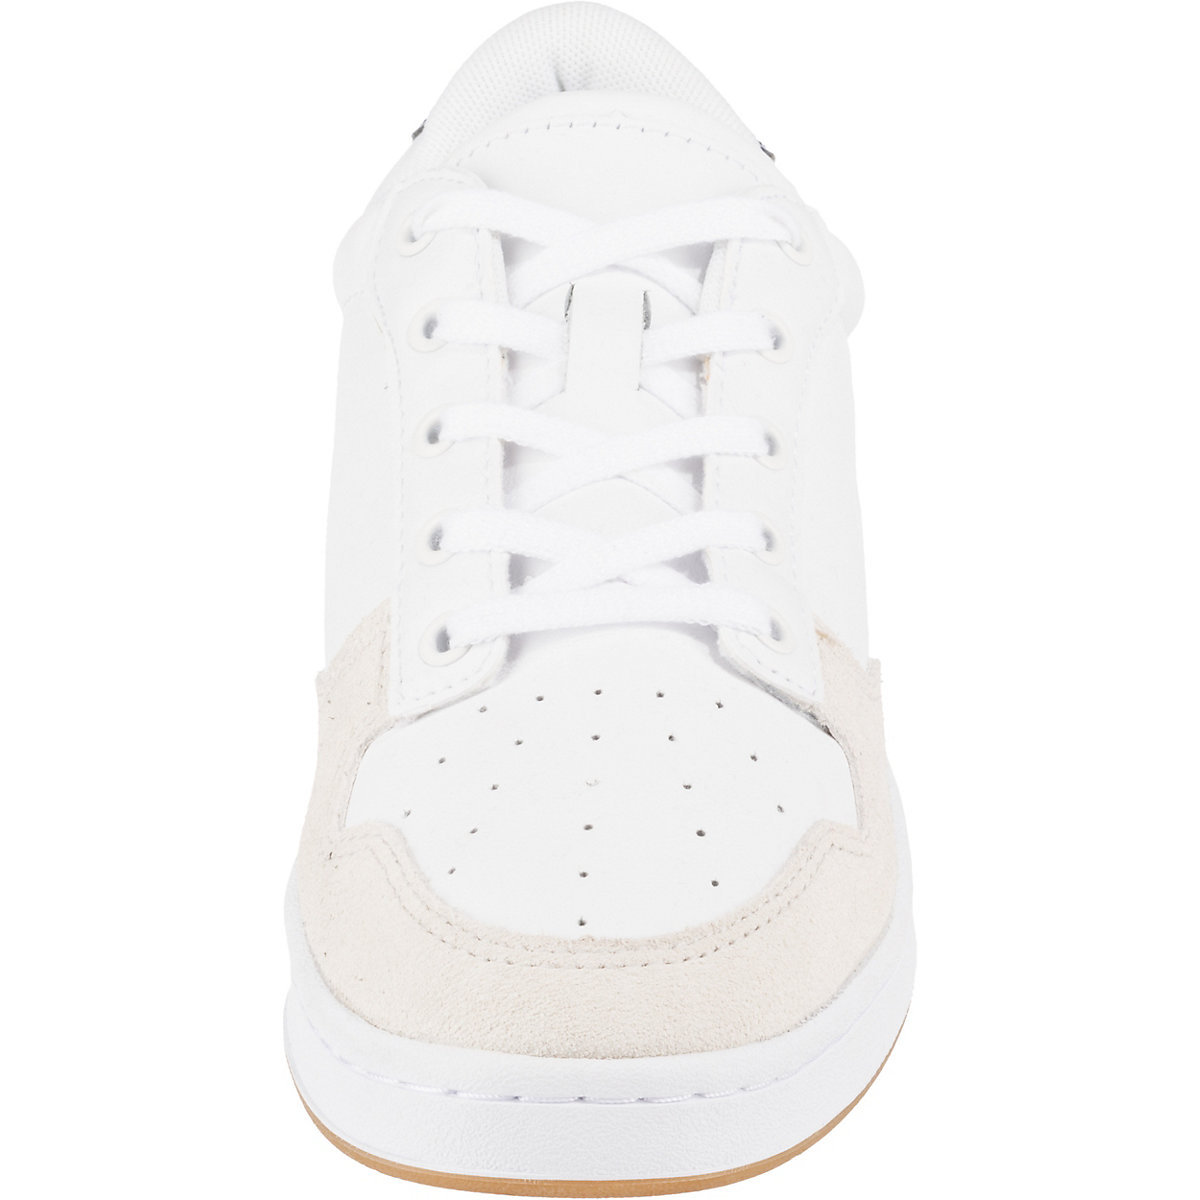 LACOSTE Masters Cup 120 4 Sfa Sneakers Low weiß